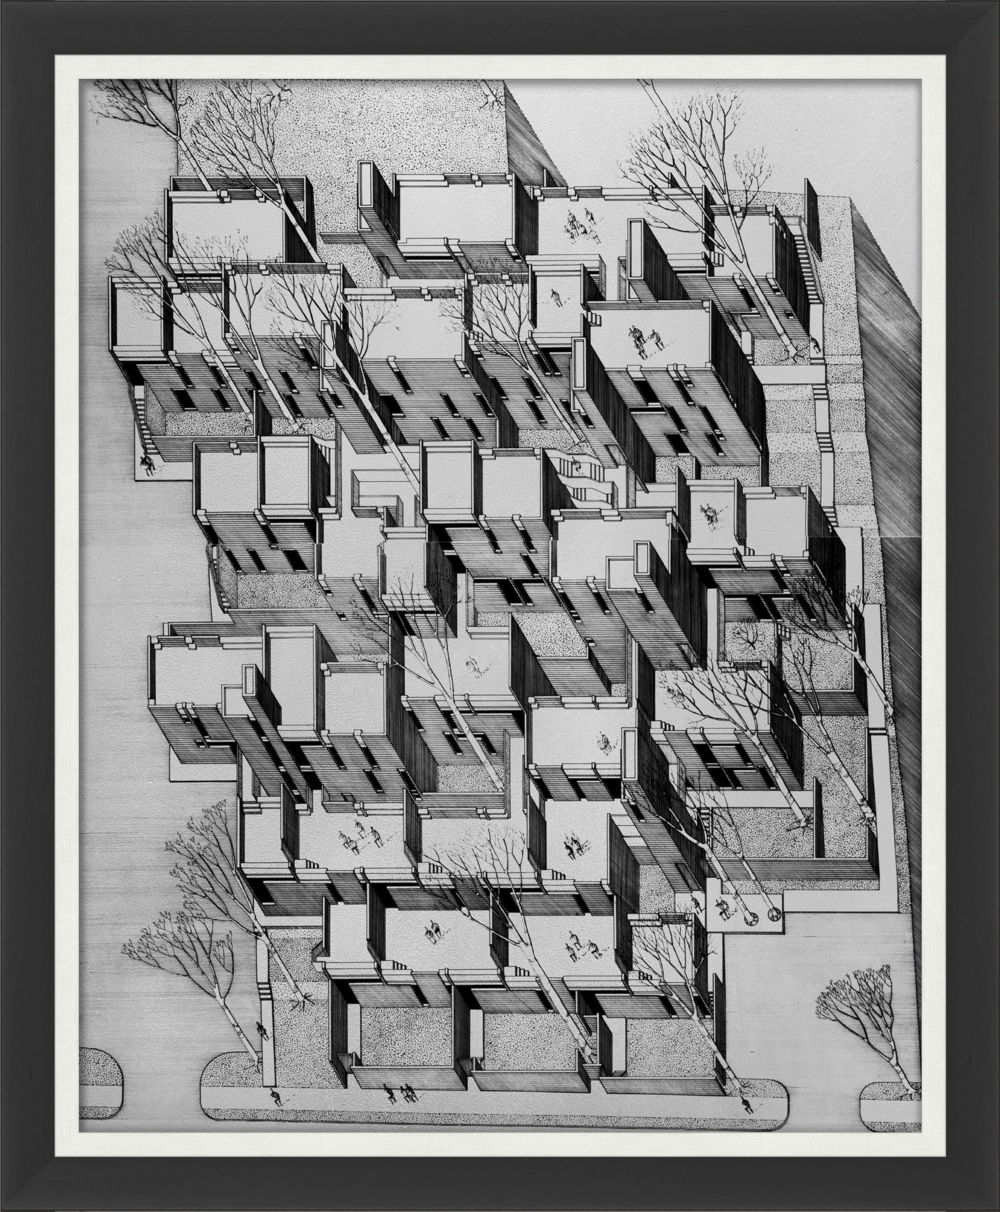 Aerial Architectural Plans 2